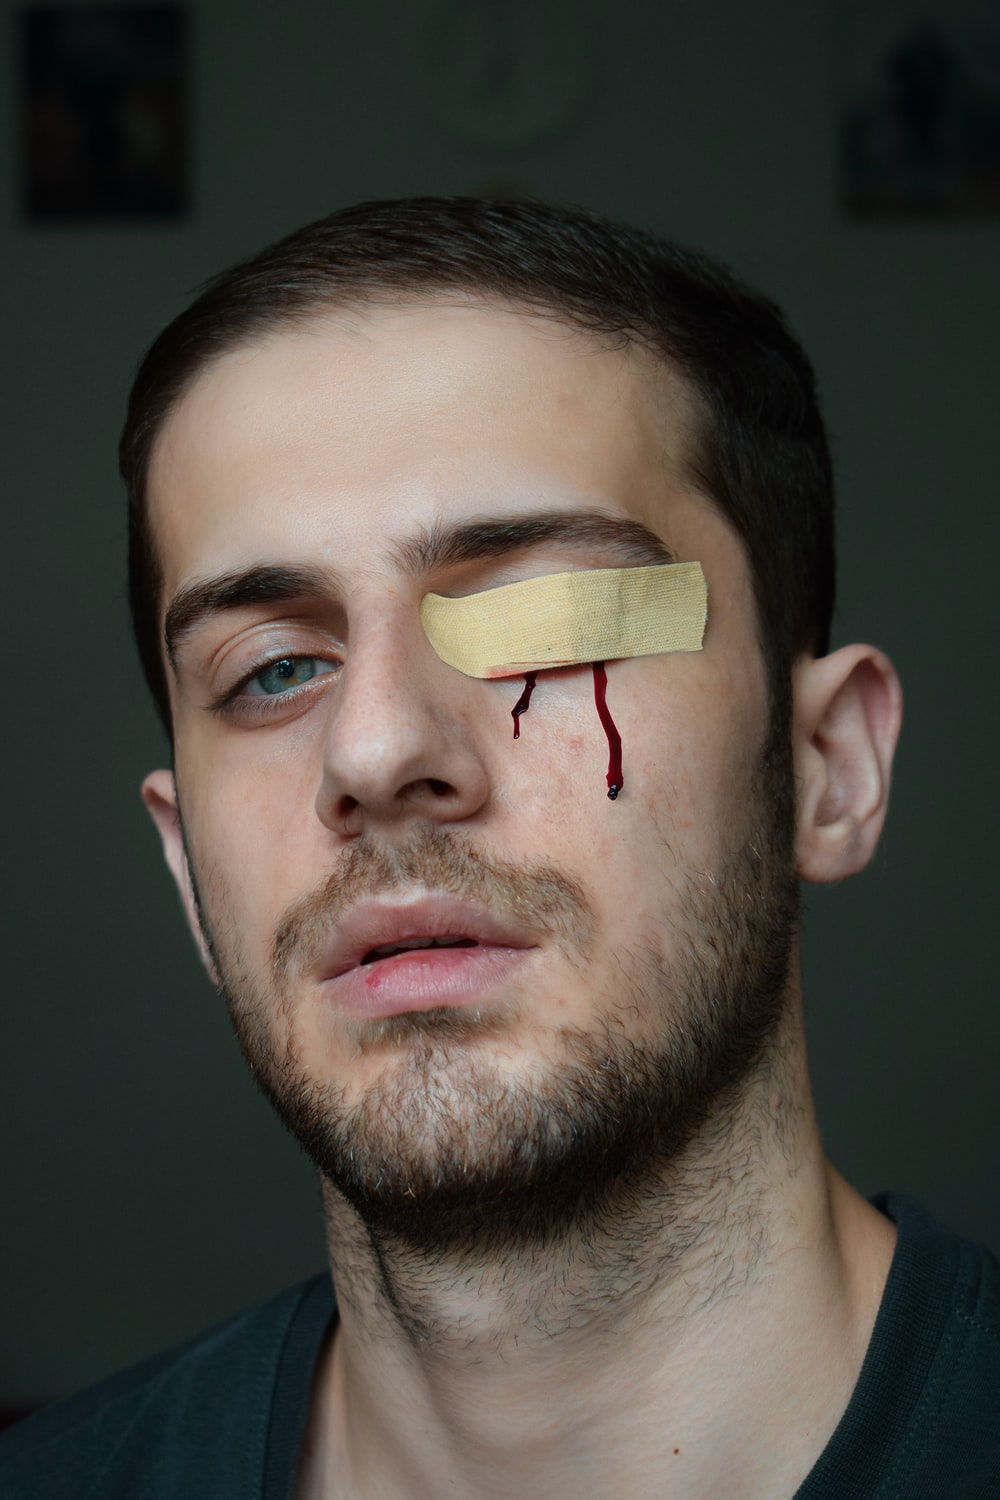 man with brown band aid on his mouth